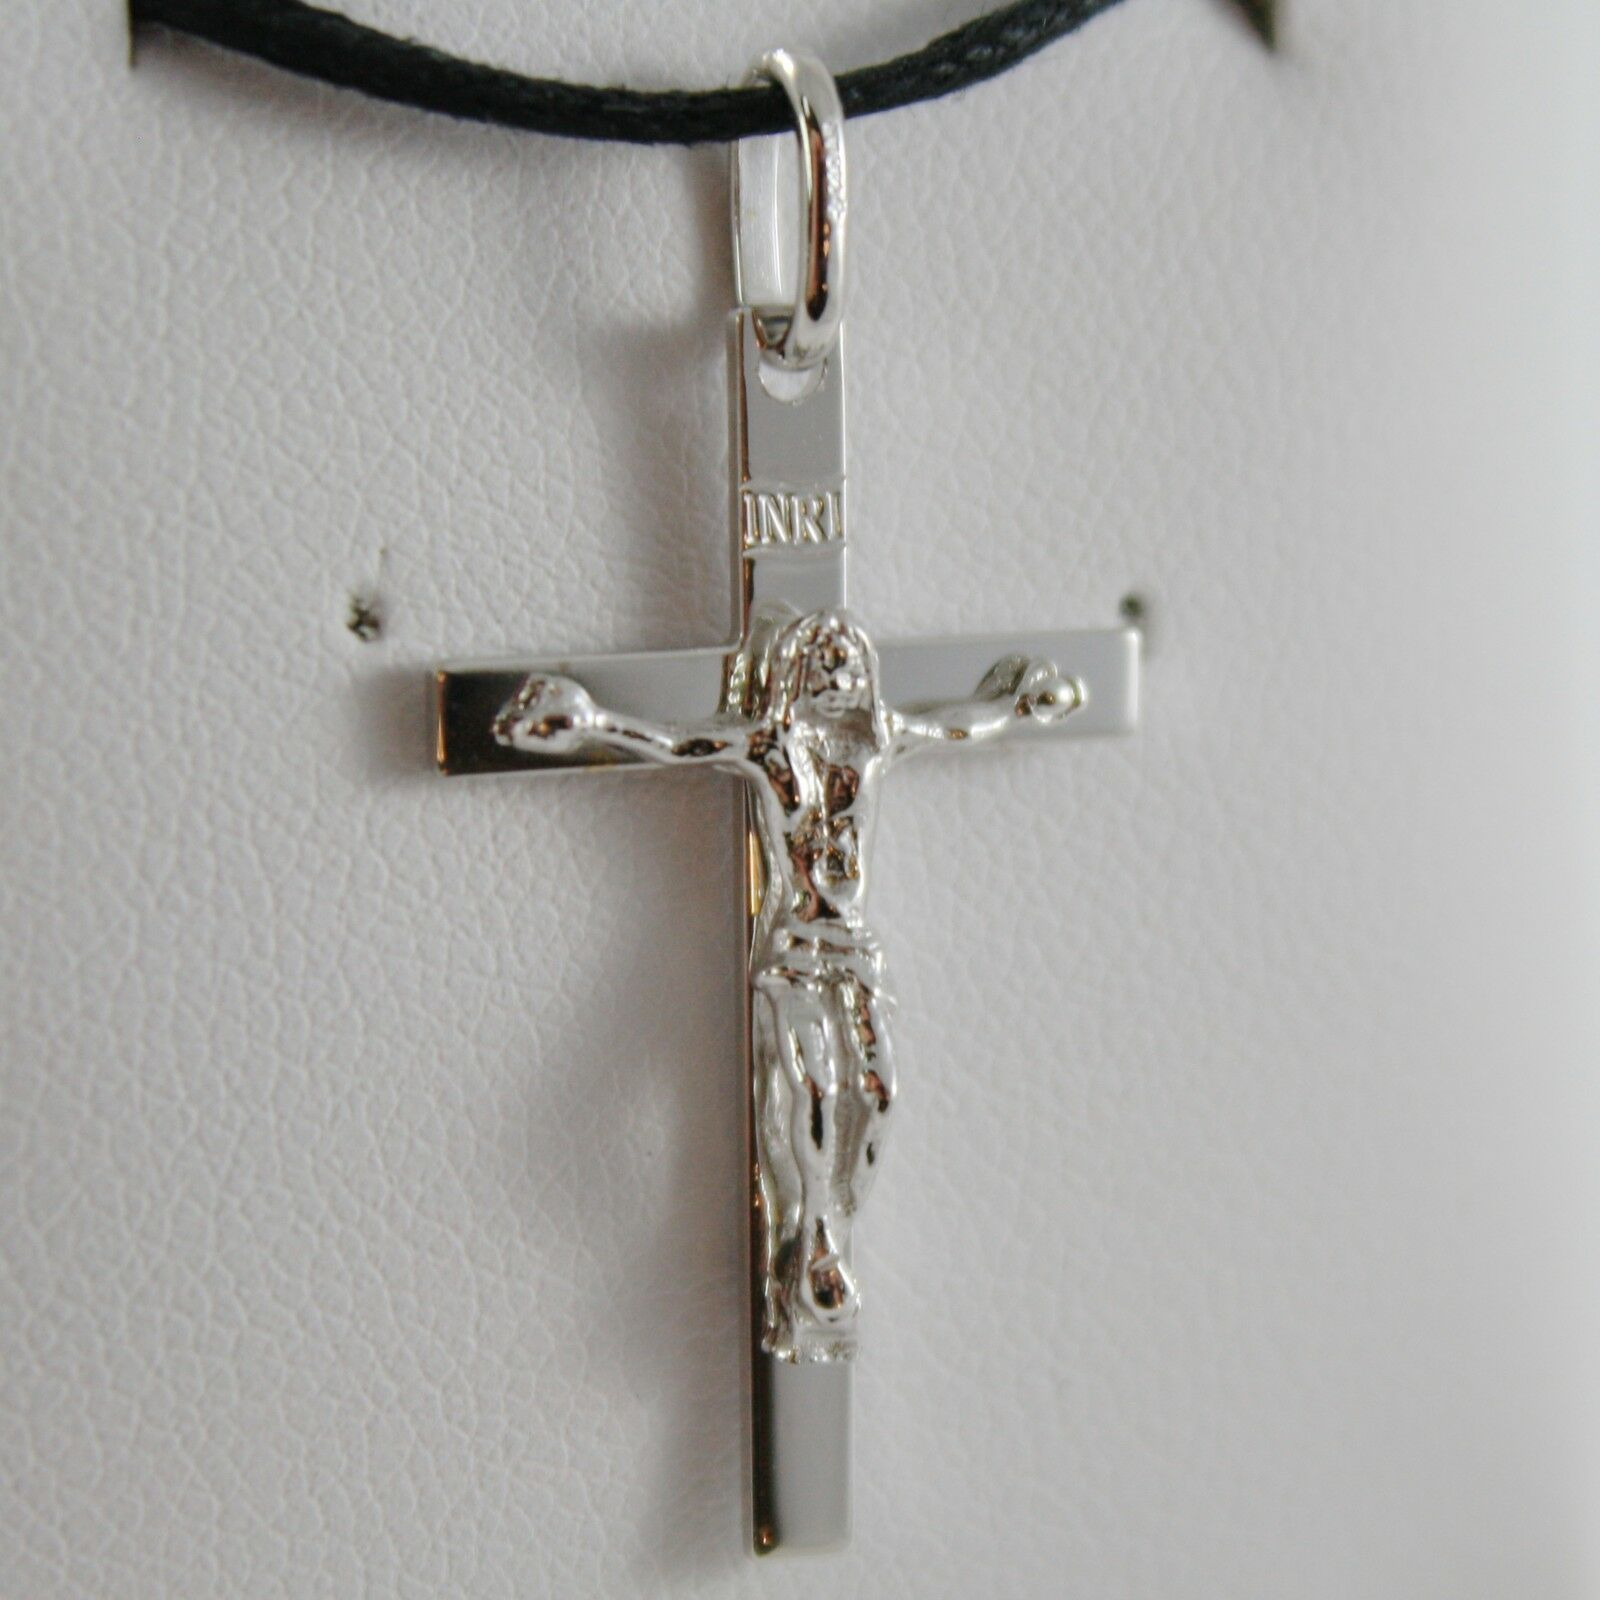 18K WHITE GOLD CROSS WITH JESUS, SMOOTH, FINELY SQUARED ENGRAVABLE MADE IN ITALY